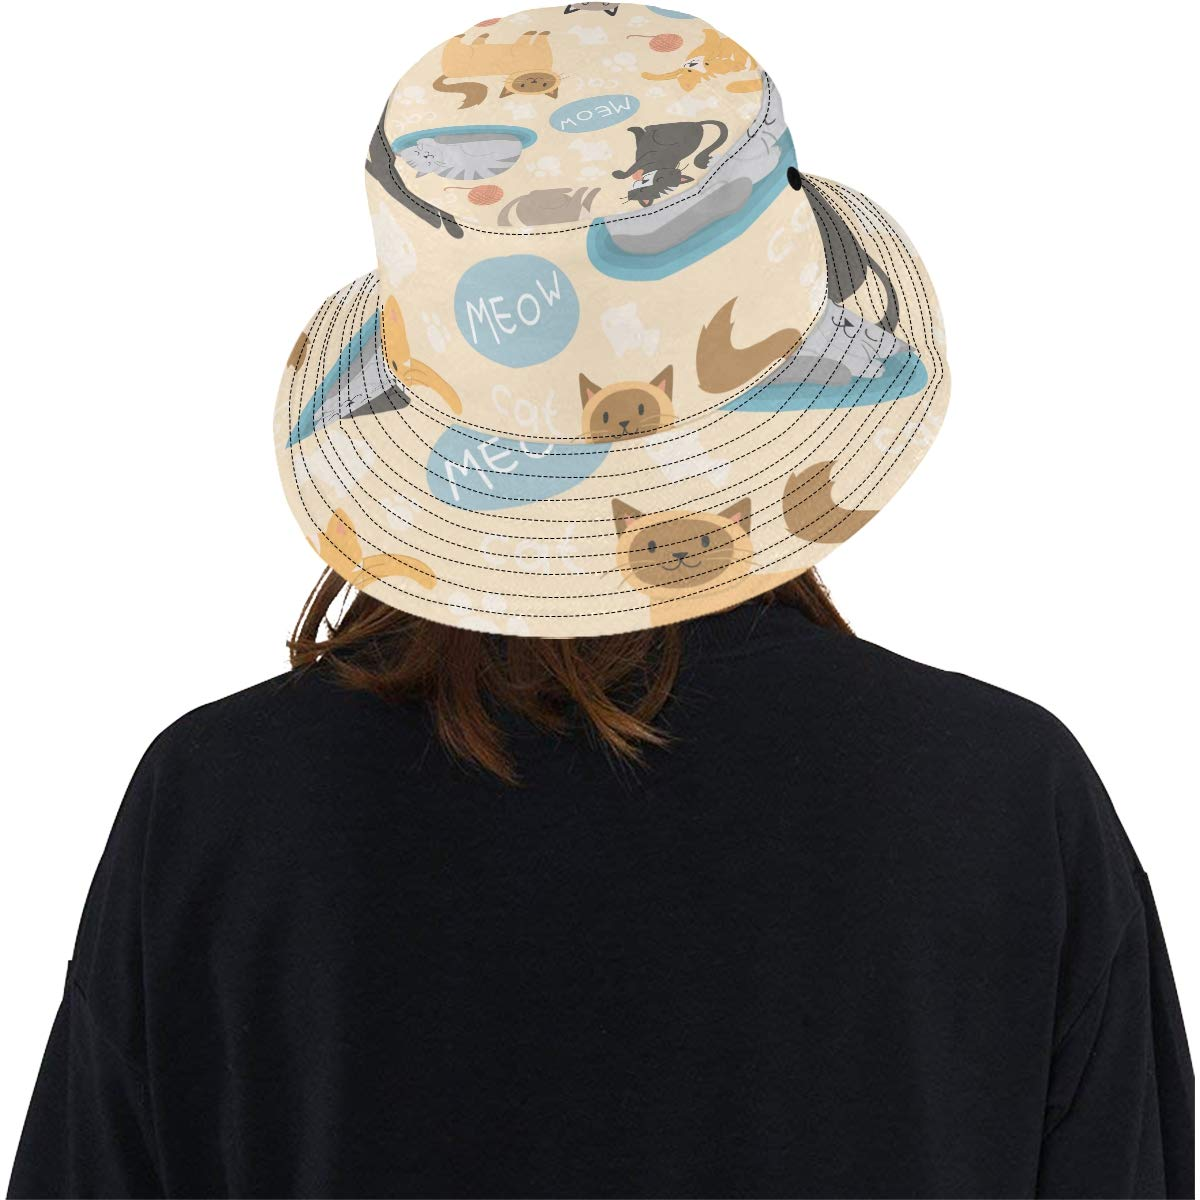 Little Funny Cats Playing Ball New Summer Unisex Cotton Fashion Fishing Sun Bucket Hats for Kid Teens Women and Men with Customize Top Packable Fisherman Cap for Outdoor Travel